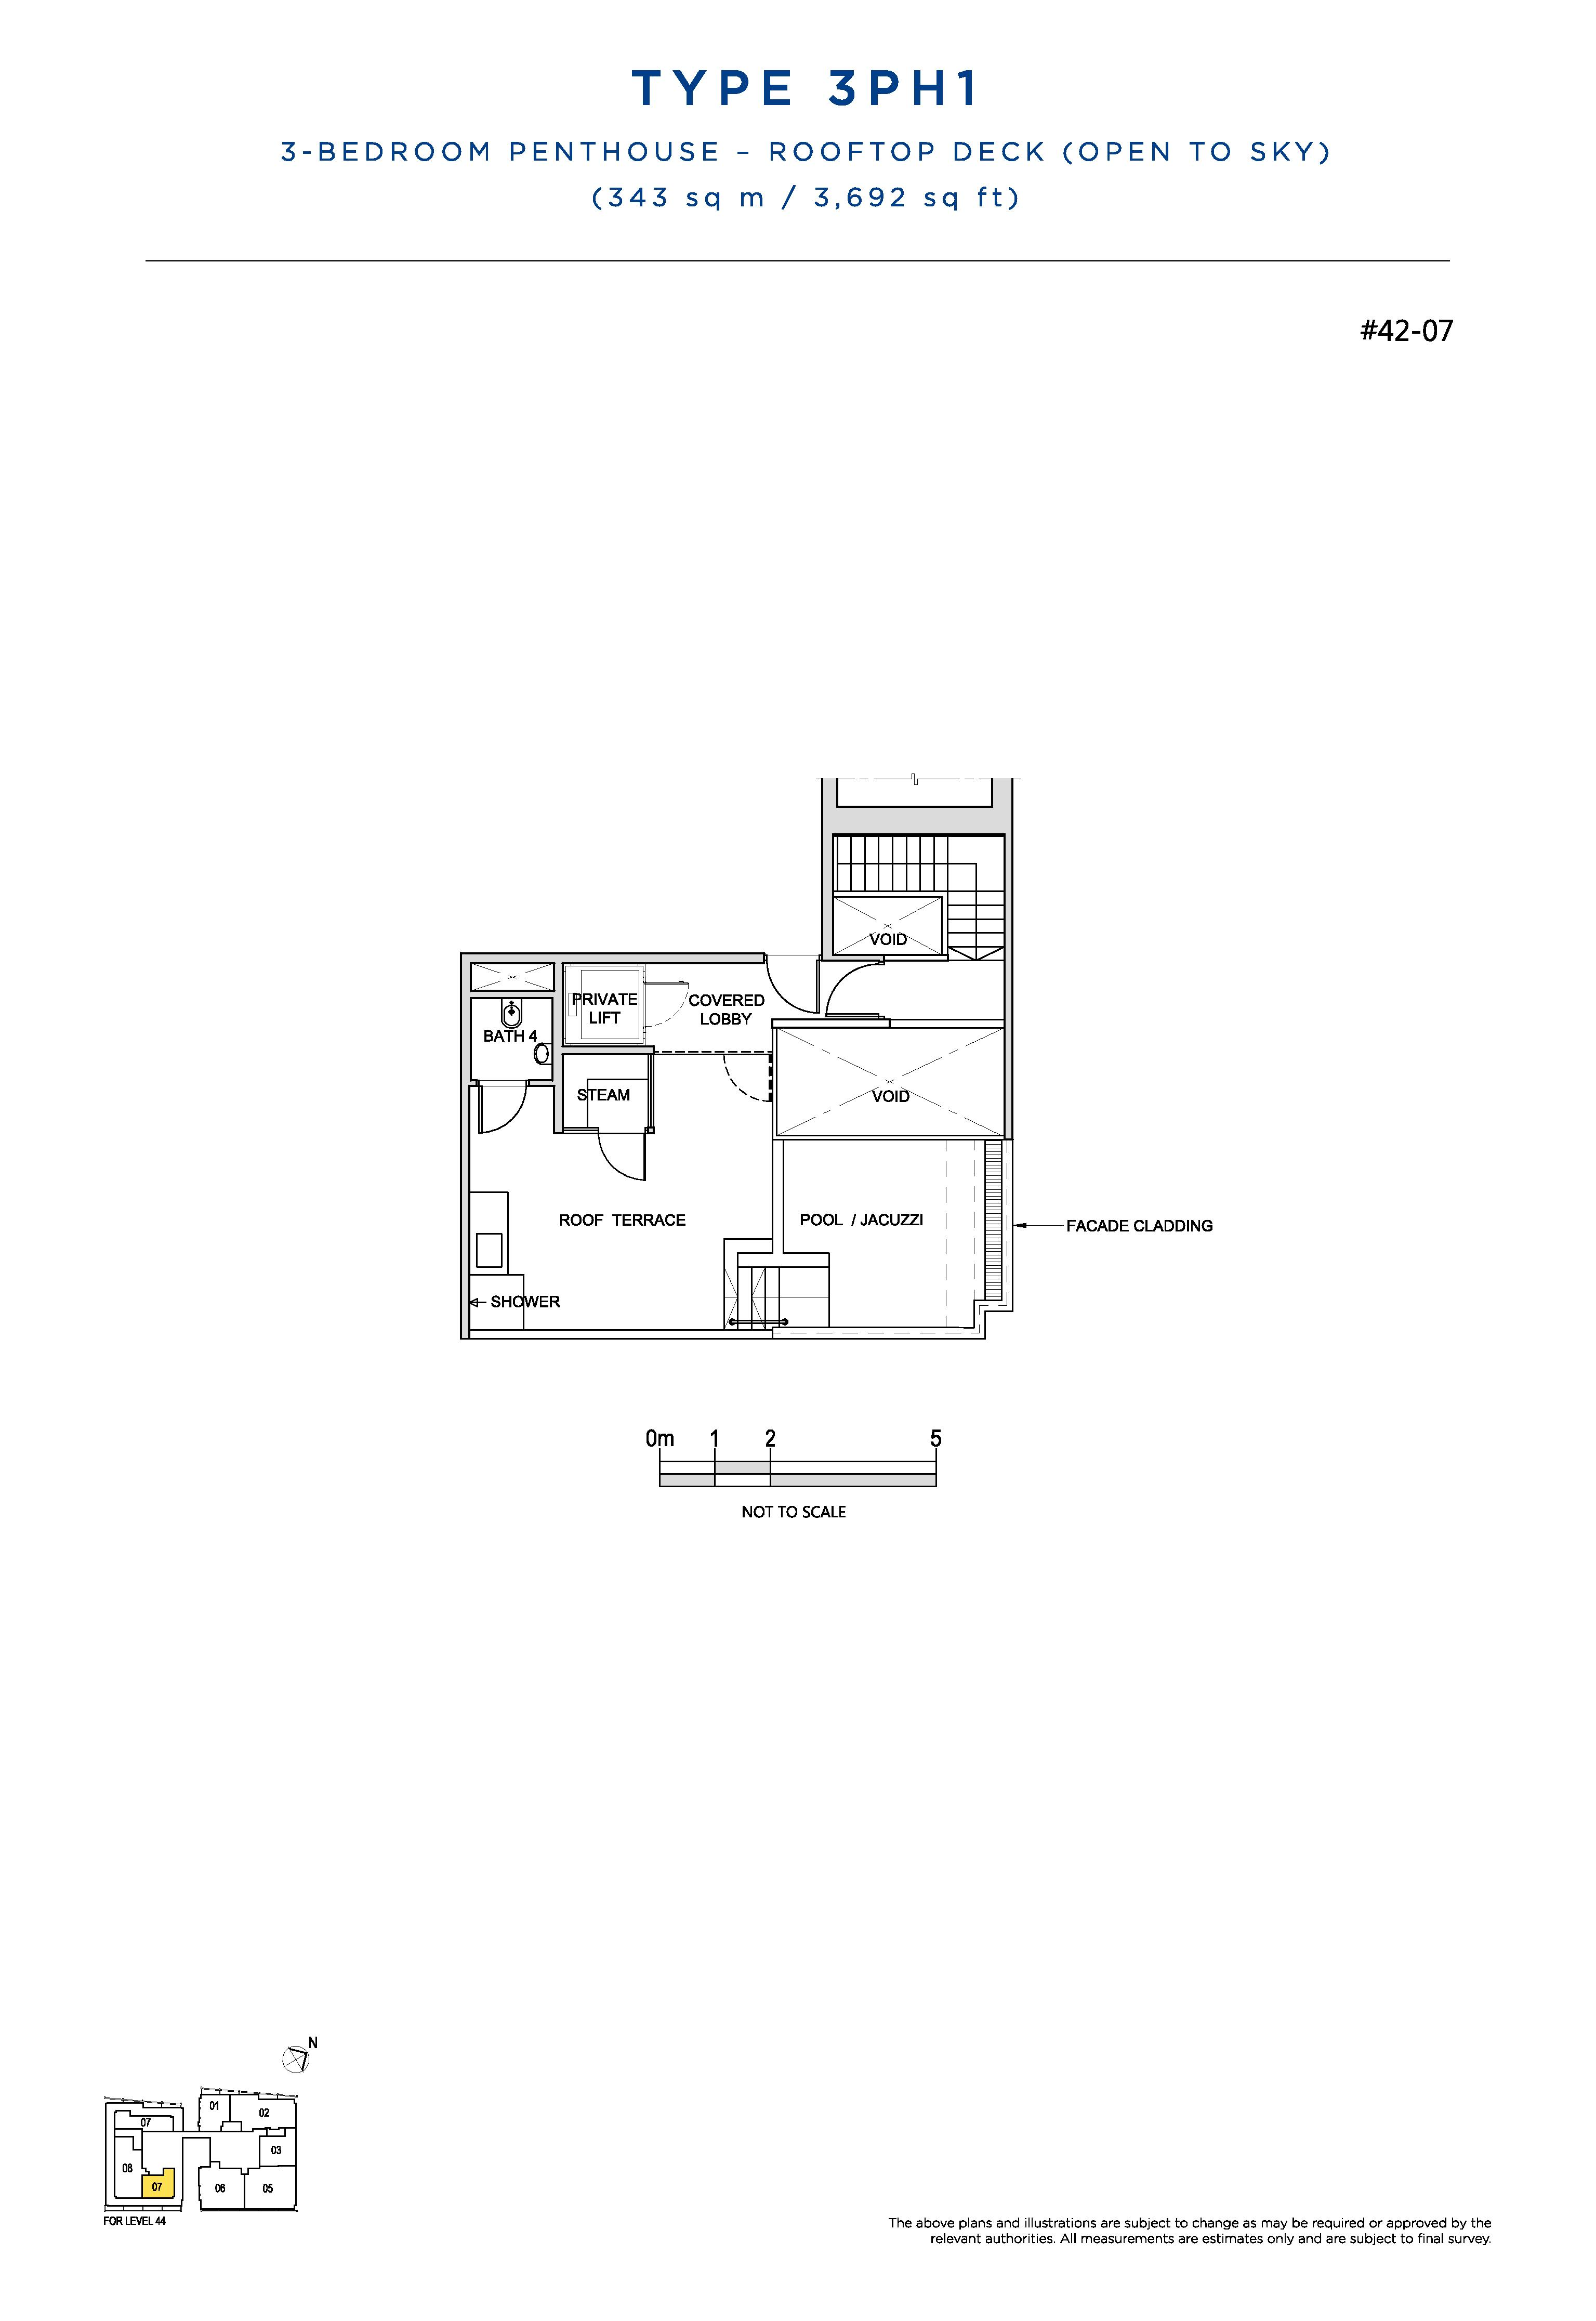 South Beach Residences 3 Bedroom Penthouse Floor Plans Type 3PH1(Rooftop Deck)